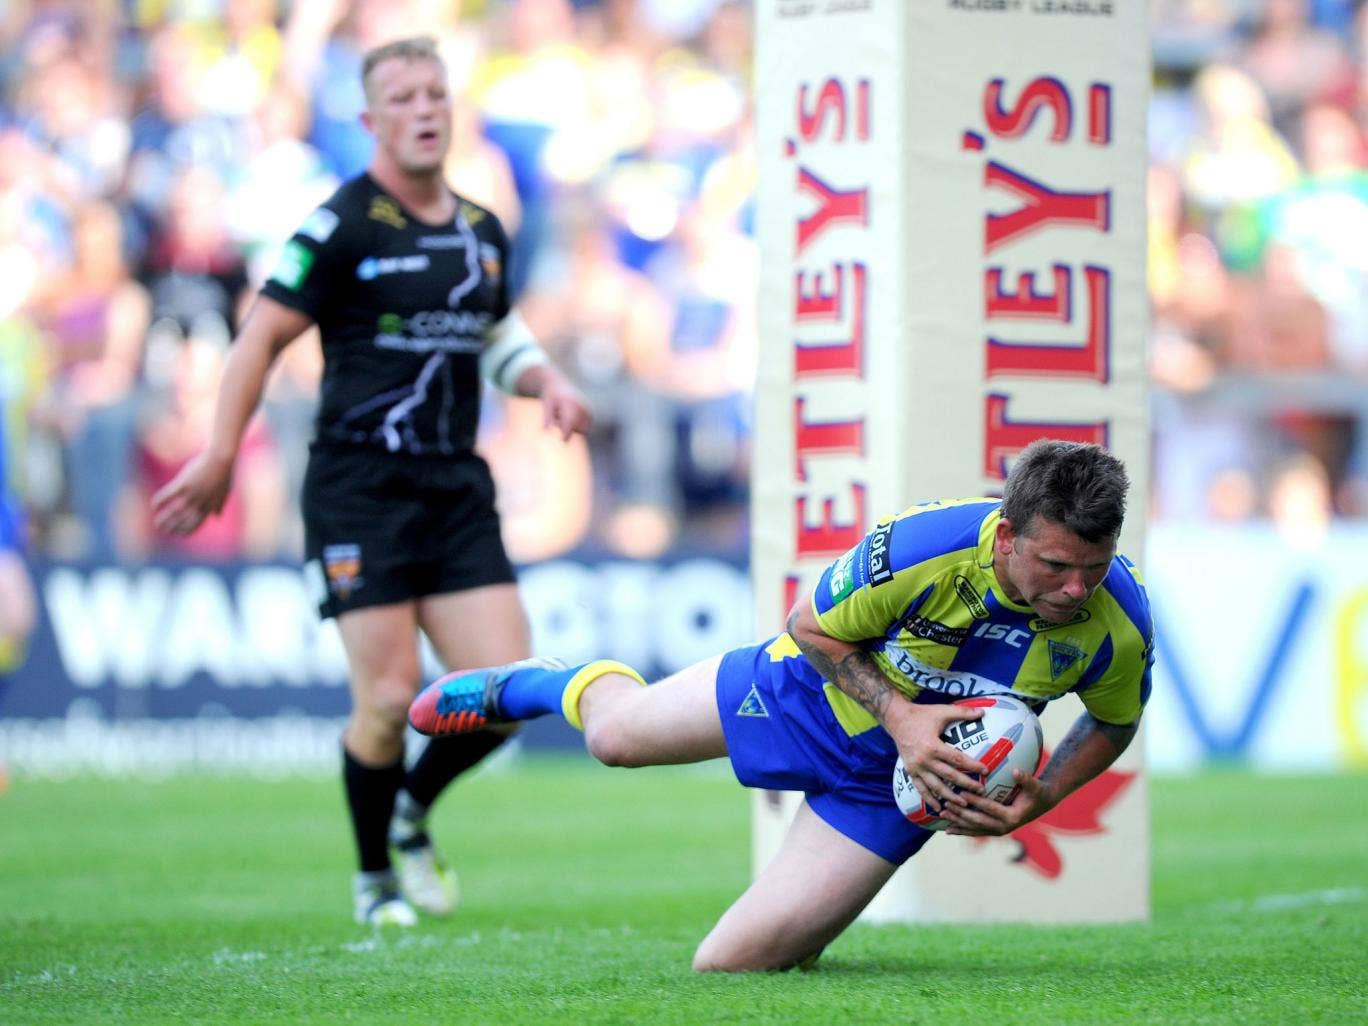 Warrington's Lee Briers goes over for a try against Huddersfield